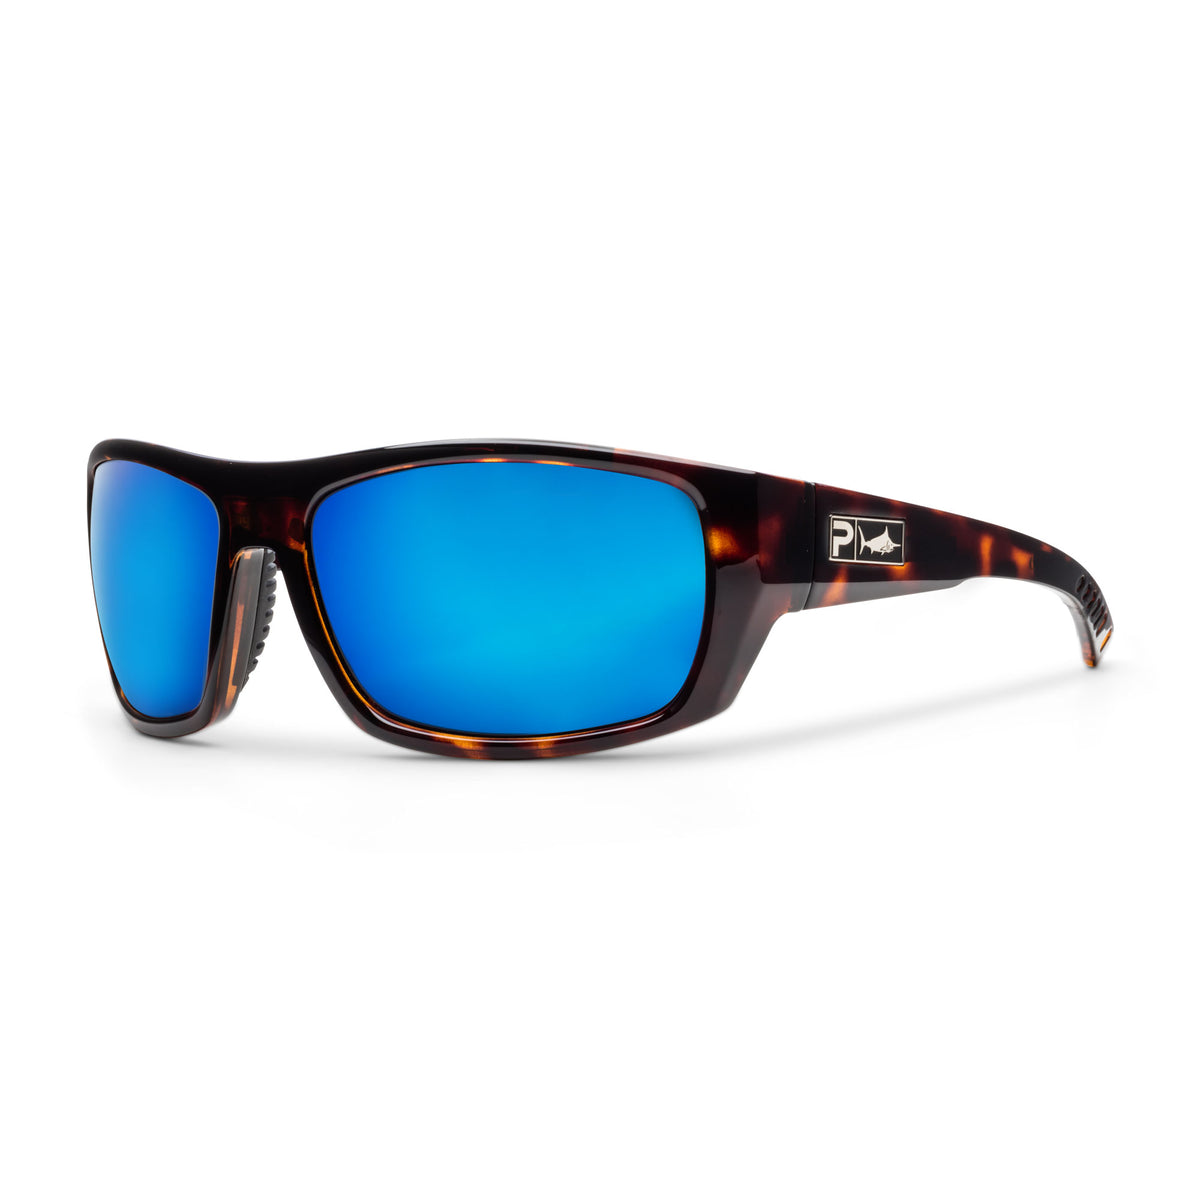 Pursuit - Polarized Mineral Glass™ Big Image - 4